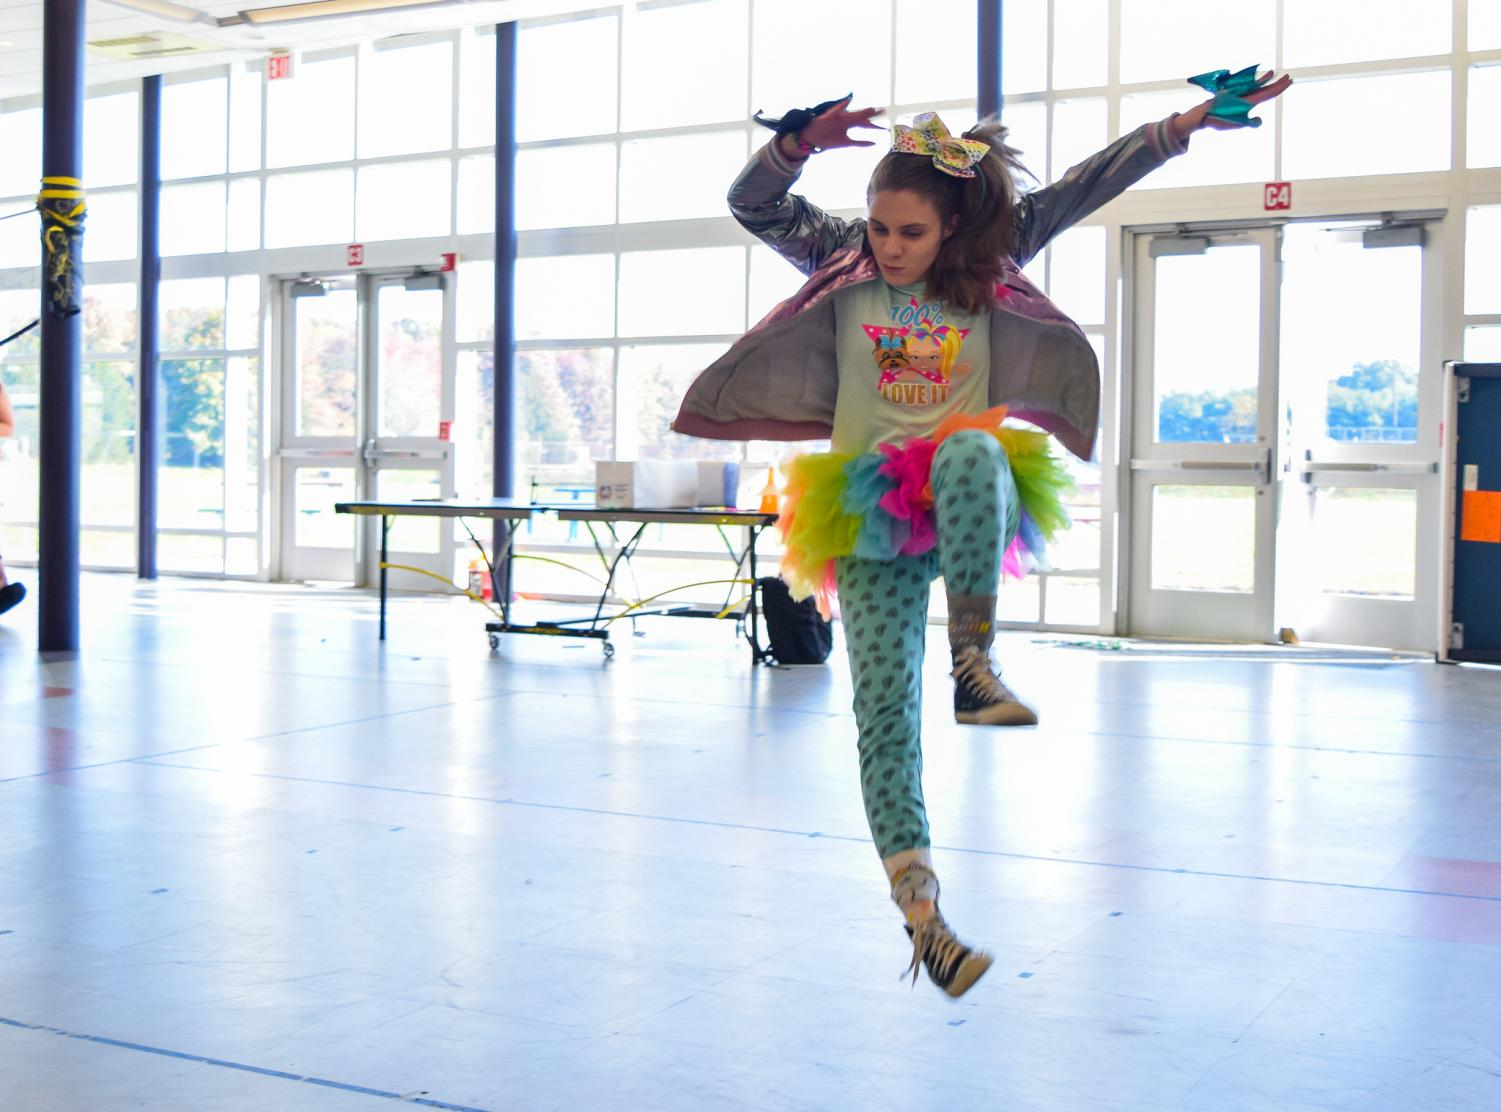 The+annual+Halloween+parade+took+place+during+lunch+on+Wednesday.+Junior+Katherine+Lombardi+of+Middletown+acts+like+dancer+and+Internet+personality+Jojo+Siwa+by+jumping+around+and+dancing.